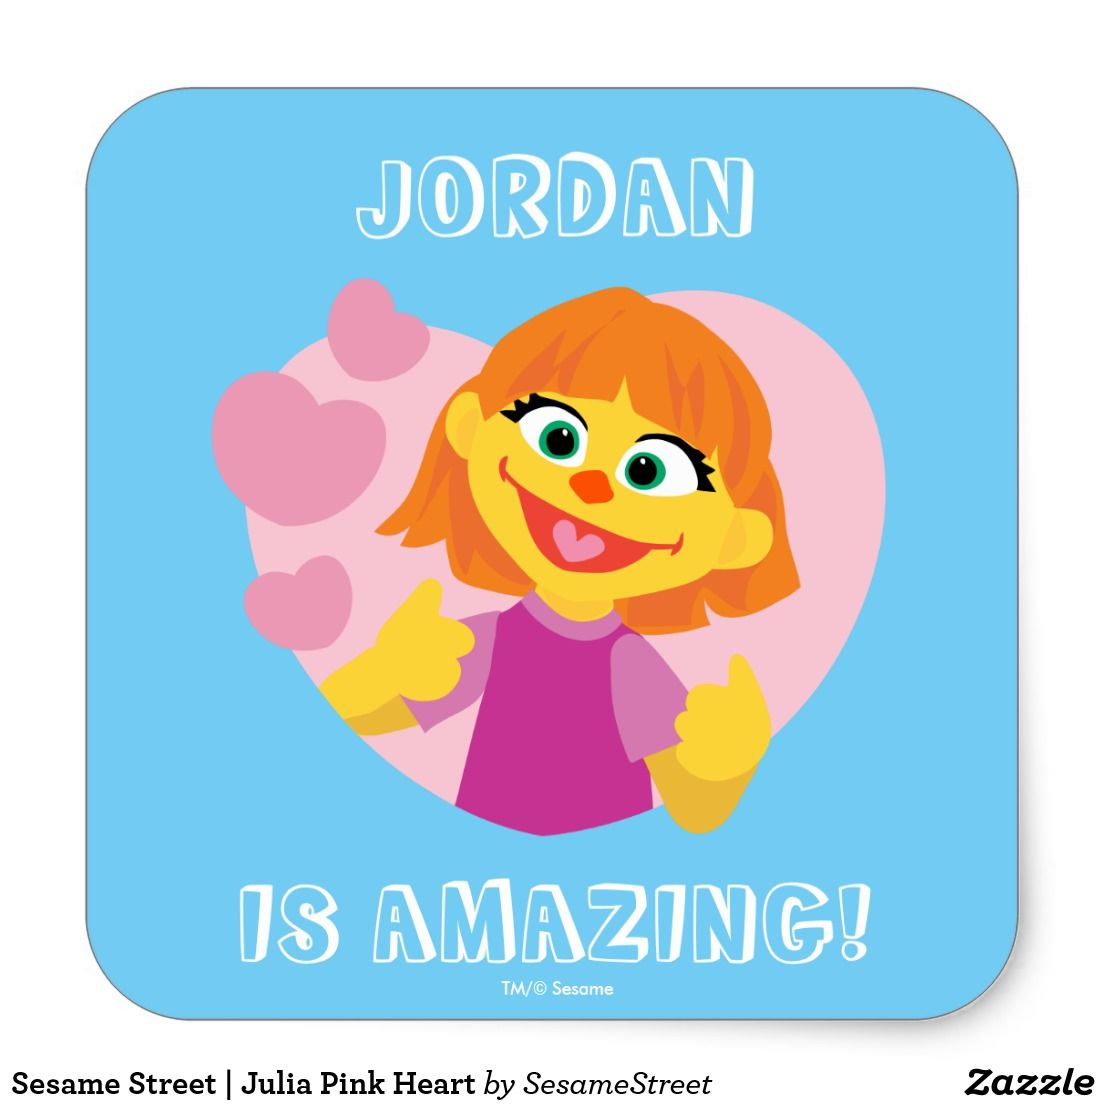 Sesame Street Julia Pink Heart Square Sticker Zazzle Com Mom And Kids Stuffs And Activities Pink Heart Stickers